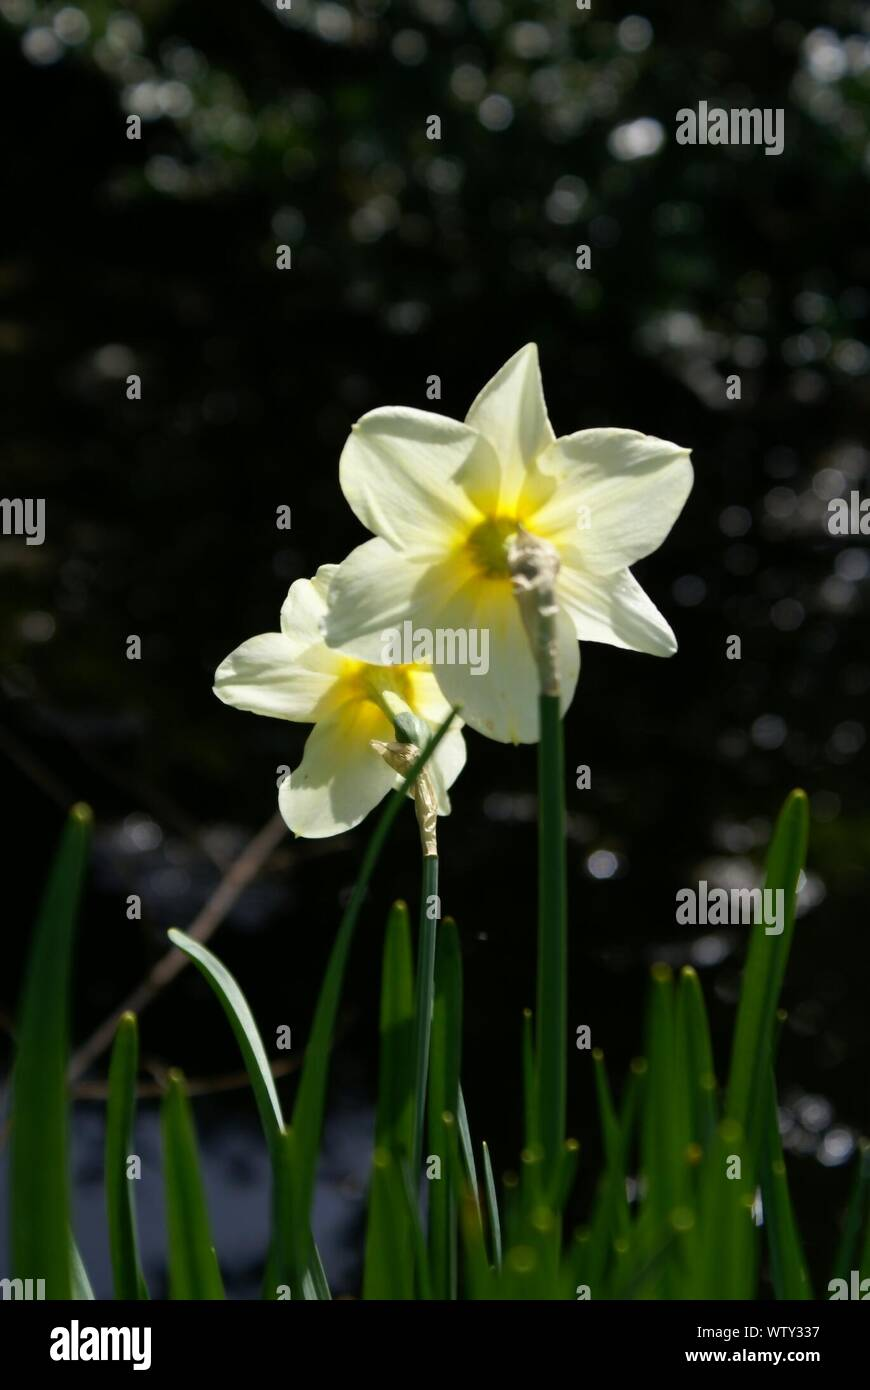 White Daffodil Flowers Stock Photo